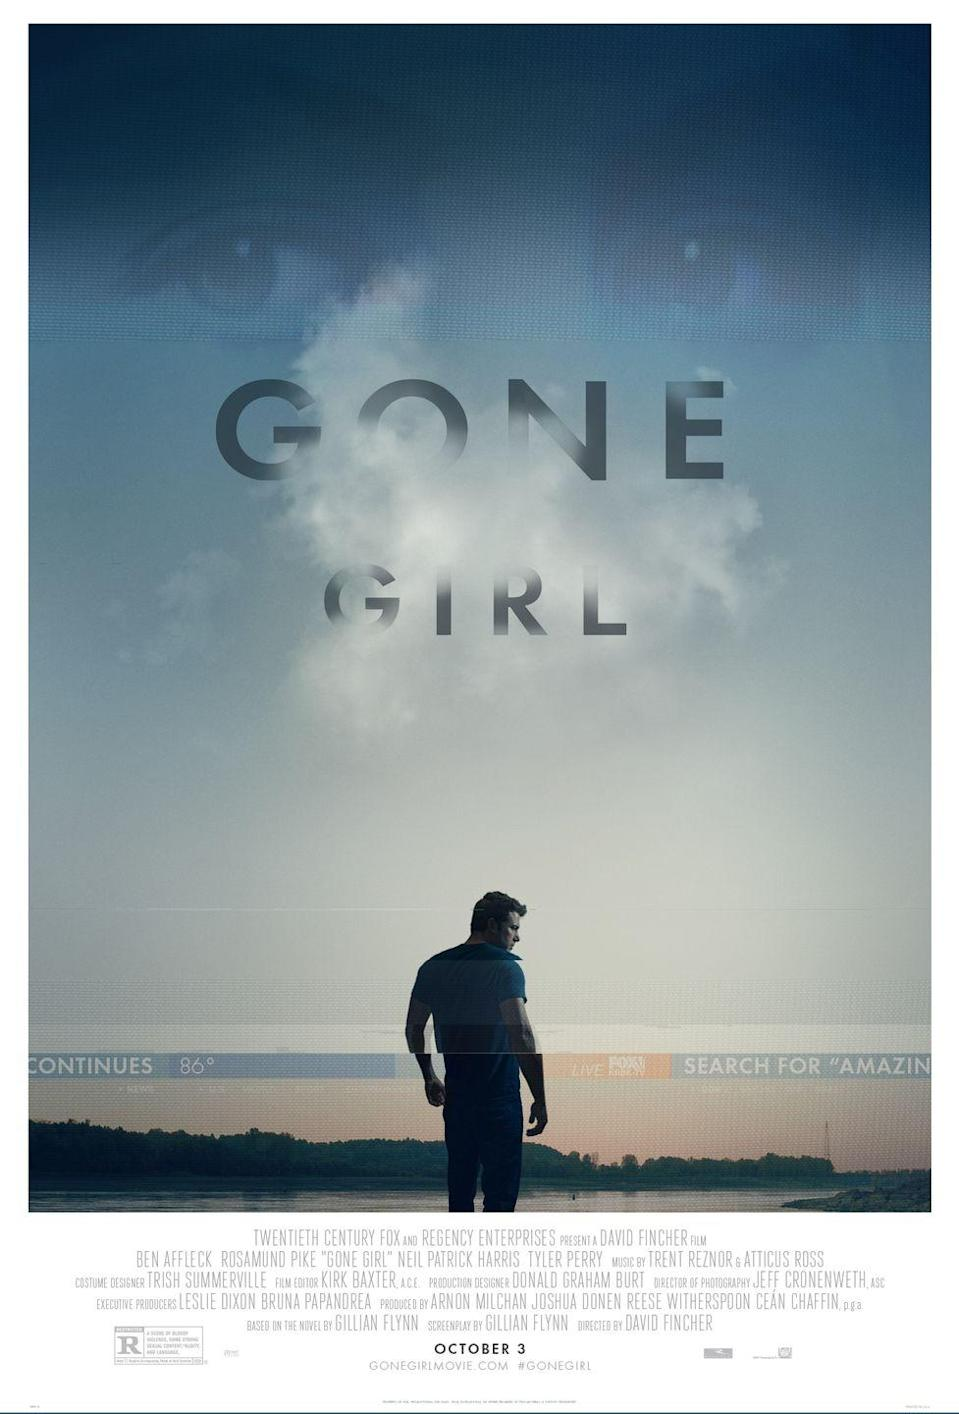 "<p>Though this popular psychological thriller (based on the <a href=""https://www.amazon.com/Gone-Girl-Gillian-Flynn/dp/0307588378?tag=syn-yahoo-20&ascsubtag=%5Bartid%7C10055.g.34396232%5Bsrc%7Cyahoo-us"" rel=""nofollow noopener"" target=""_blank"" data-ylk=""slk:novel by Gillian Flynn"" class=""link rapid-noclick-resp"">novel by Gillian Flynn</a>) may not follow the classic ""whodunit"" formula, there's definitely a murder mystery at the center of <em>Gone Girl</em>. A man (Ben Affleck) becomes a prime suspect for the murder of his wife (Rosamund Pike) after she goes missing, but all certainly isn't what it seems ... <br></p><p><a class=""link rapid-noclick-resp"" href=""https://www.amazon.com/Gone-Girl-Ben-Affleck/dp/B00O4UQIT4?tag=syn-yahoo-20&ascsubtag=%5Bartid%7C10055.g.34396232%5Bsrc%7Cyahoo-us"" rel=""nofollow noopener"" target=""_blank"" data-ylk=""slk:WATCH ON AMAZON"">WATCH ON AMAZON</a></p>"